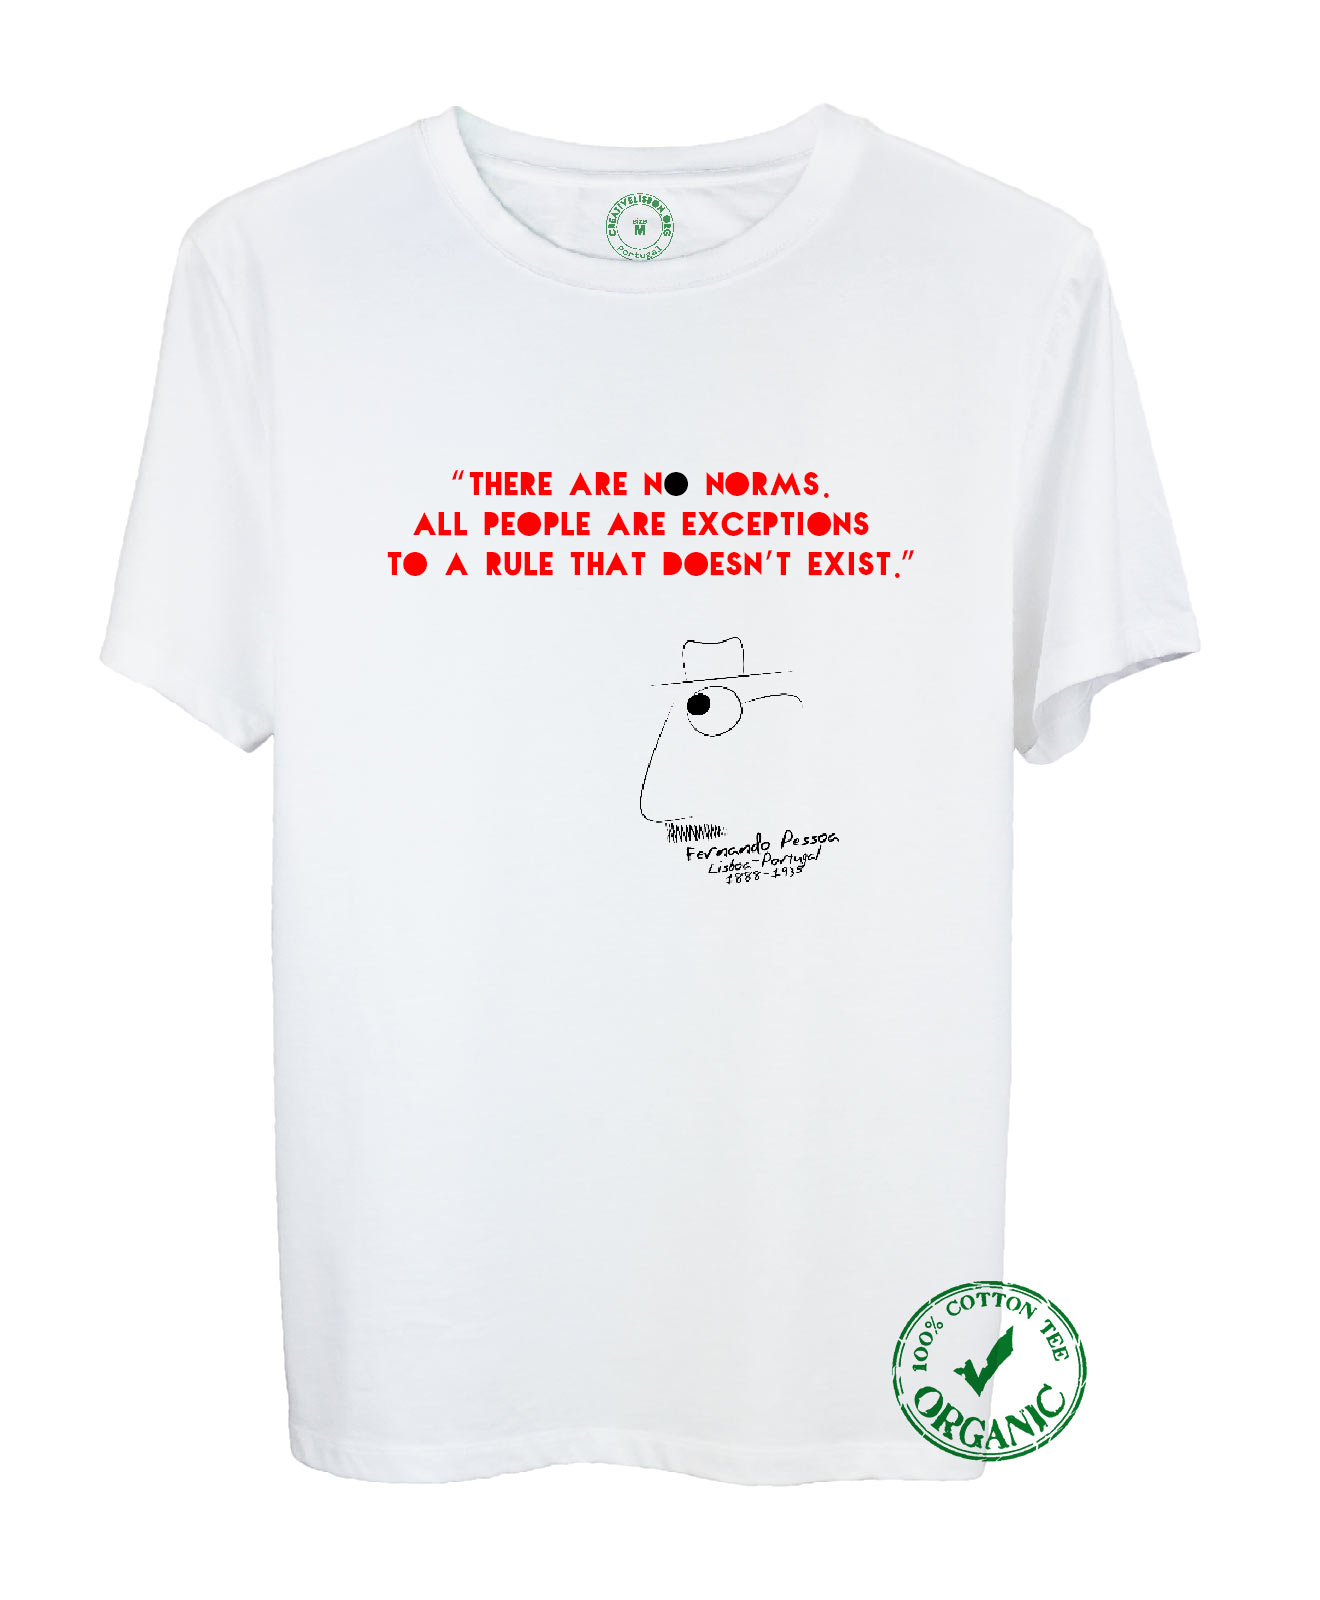 No Norms Organic Cotton Tee with quote and the poet cartoon